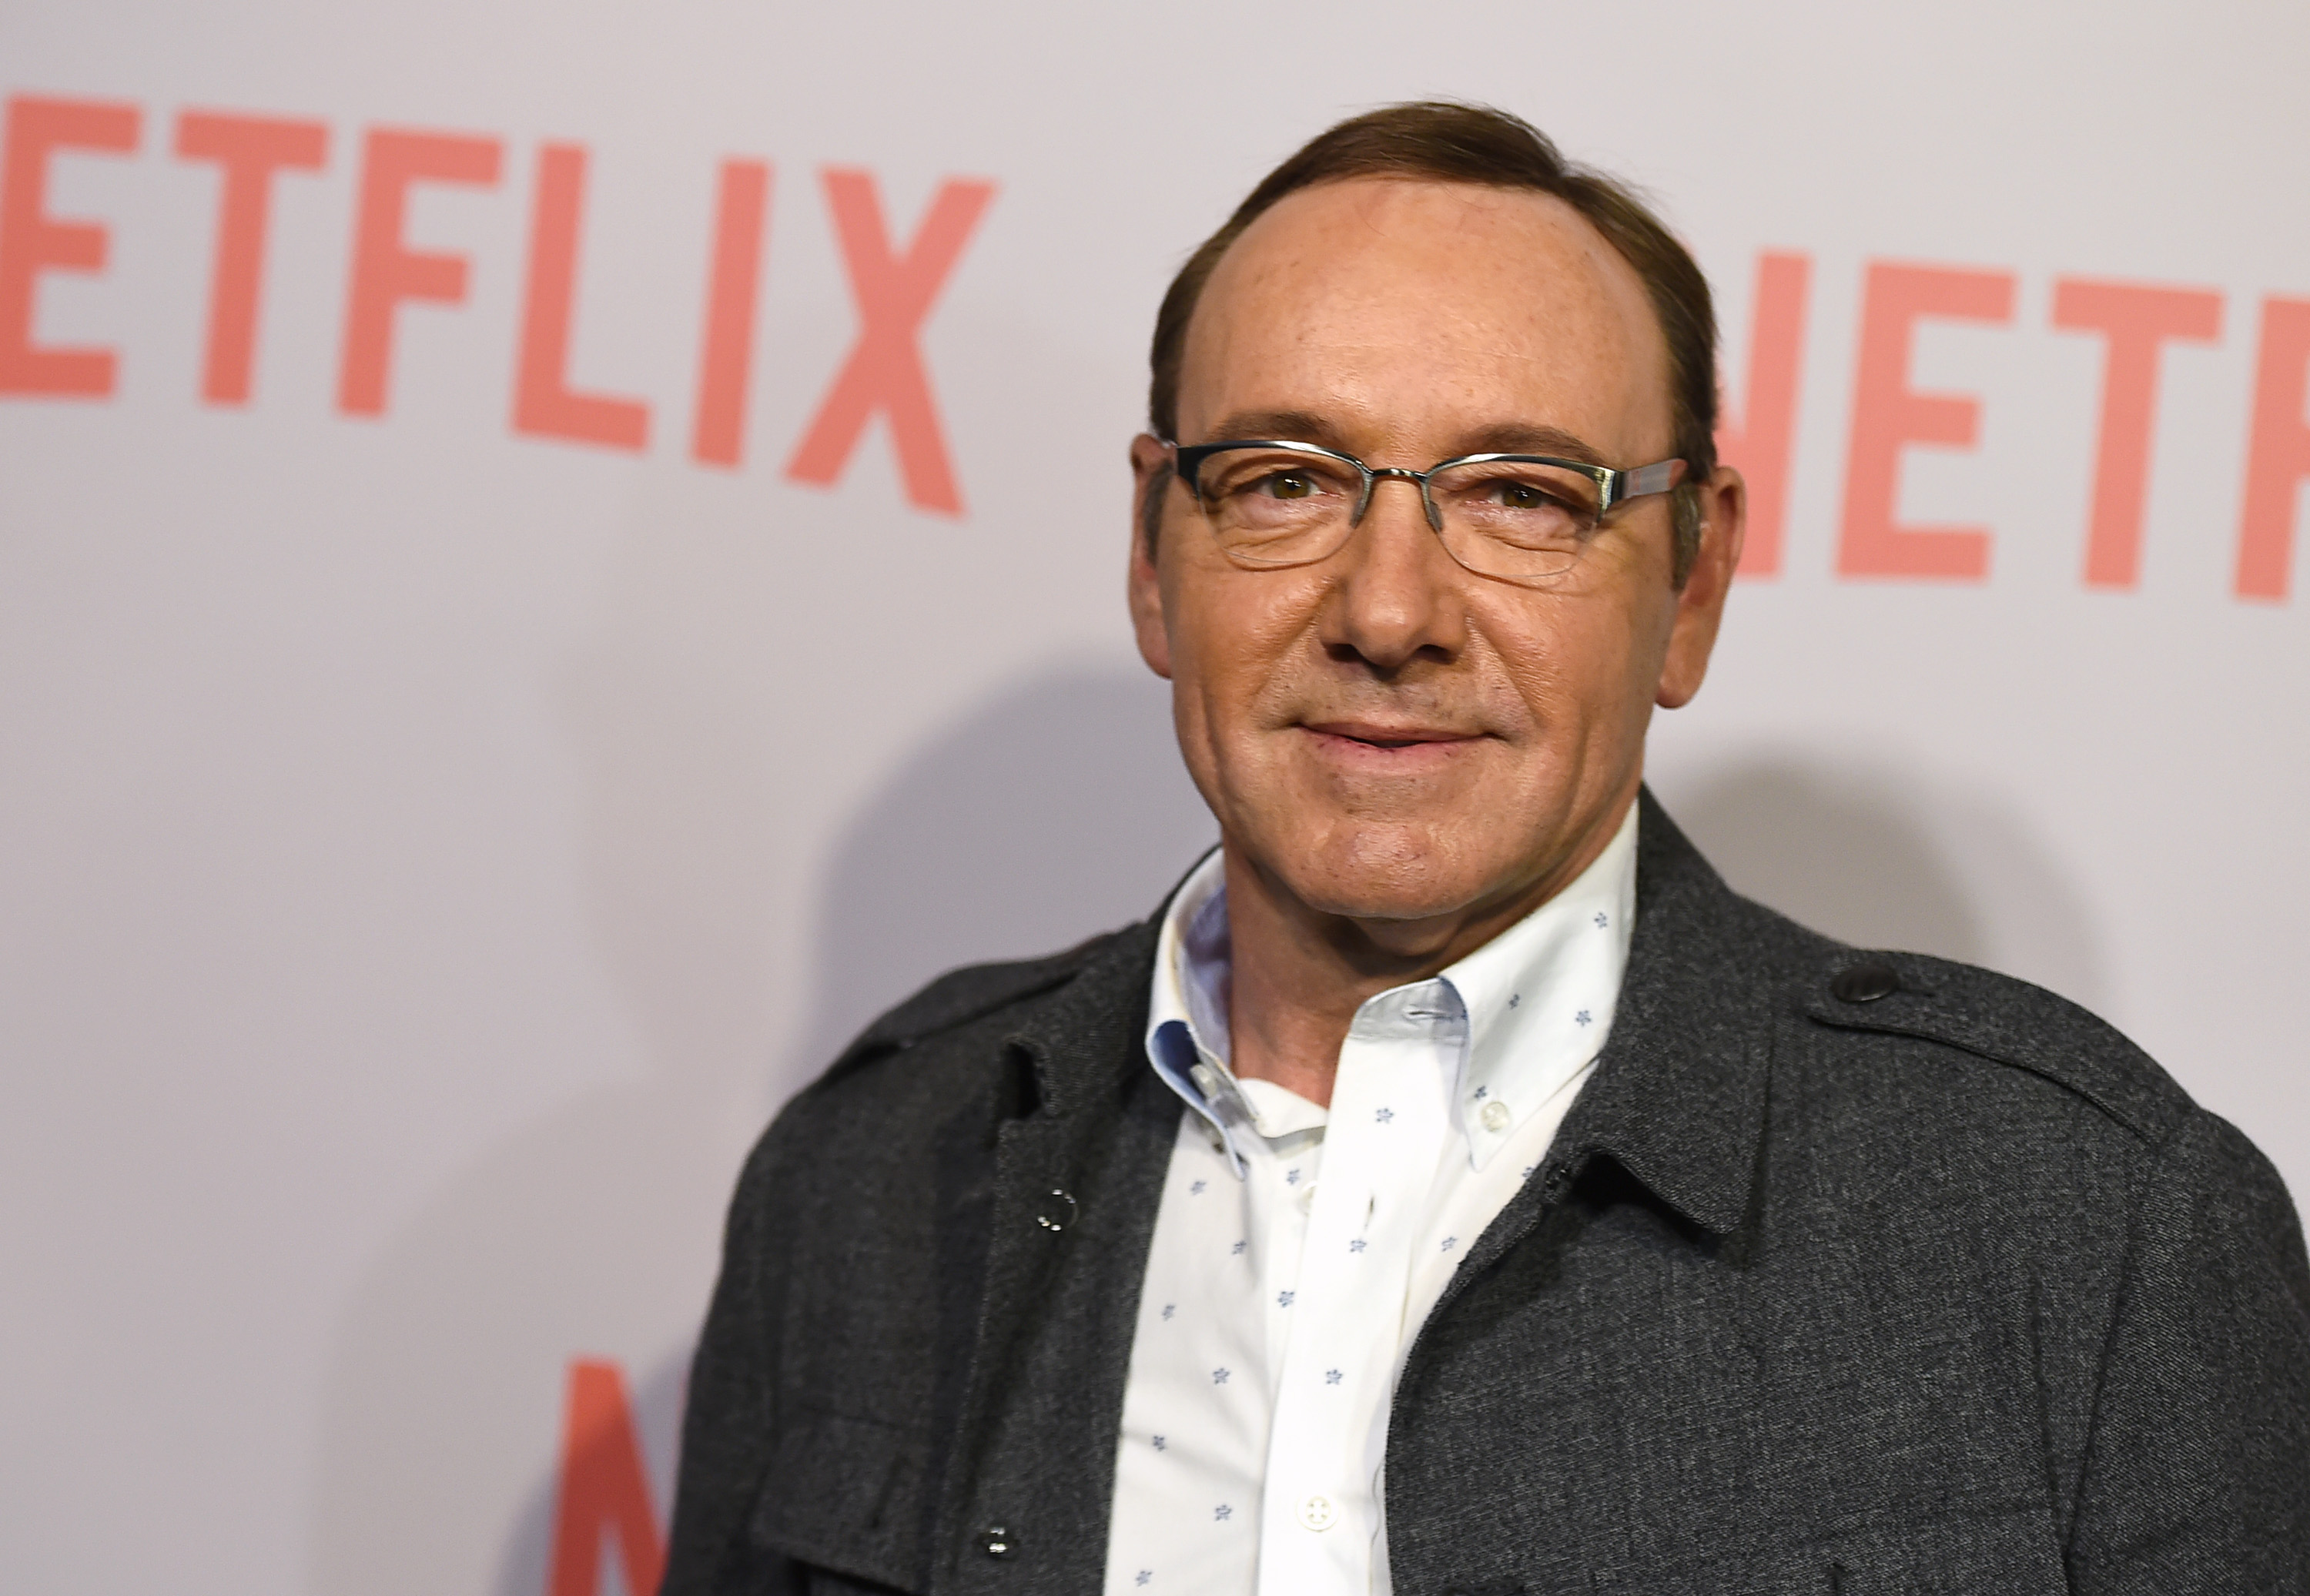 Kevin Spacey to produce scripted series based on the Unabomber